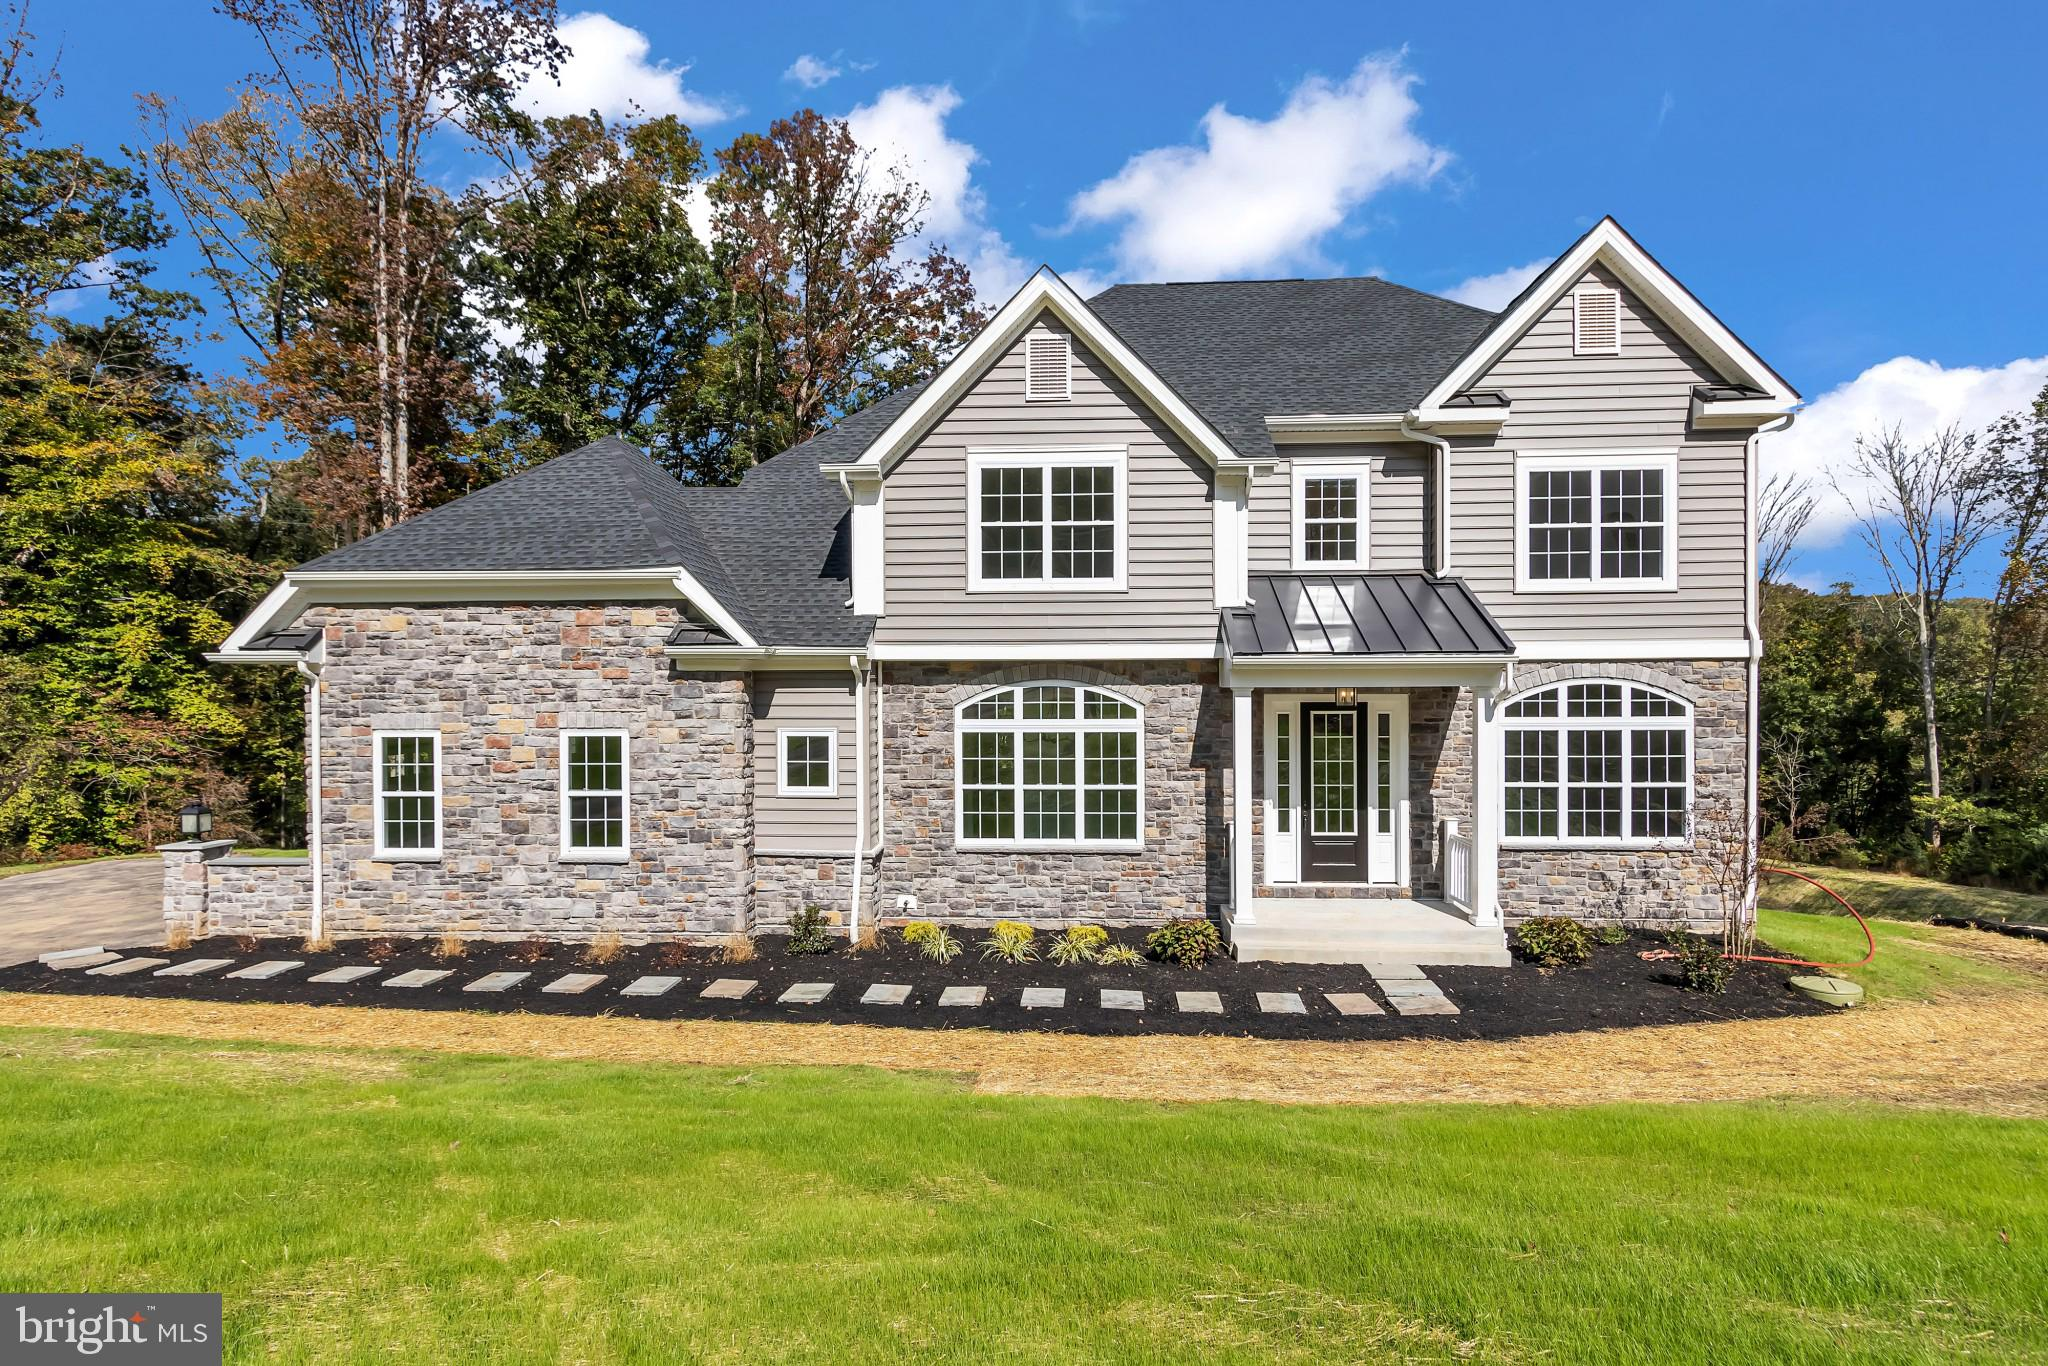 """Third Generation Builders proudly offers the Dilworthtown Model at 1541 Tattersall Way in West Chester!  This premium homesite offers stunning golf course views in West Bradford Township's Tattersall Community is a rare opportunity to build a customized home in an established desirable neighborhood.  You won't be bothered with the inconveniences that go along with new development construction here!  Finally, new construction is available on a large lot with public utilities in West Chester!  Choose from 3  brilliantly designed floor plans, each featuring open concept living and size in the rooms where you want it most!  All models come with a generous included features package including hardie board siding enhanced by stone water table, 30 year dimensional roof shingles, 9' ceiling height on all 3 levels, extensive hardwood flooring, oak stairs, 42"""" cabinets, soft close doors and drawers, granite counters, oversized island, handsome trim detail and cozy family room fireplace!  Need more space?  Exciting structural options are available including in law suite, 5th bedroom, secondary bedroom en suite, 10' ceiling, finished basement, deck, patio and much much more!  Need more value?  You will love the energy efficient and smart home features including R-38 ceiling and R-18 sidewall insulation, water saving plumbing, quick recovery water heater, high efficiency forced hot air, 13 SEER central air conditioning, programmable thermostats, low E vinyl windows and insulated exterior doors.  Looking for community amenities?  Broad Run's clubhouse, Bordley House Grille and the first tee is literally a short enjoyable walk down the hill!  You will thoroughly enjoy the neighborhood location.  In just a short drive you can be in vibrant West Chester or Downingtown Boroughs and even closer is the quaint village of Marshalltown!  Third Generation Builders employ a hands on approach with personal attention to detail and adherence to the highest standards.  Bring your dreams and idea"""